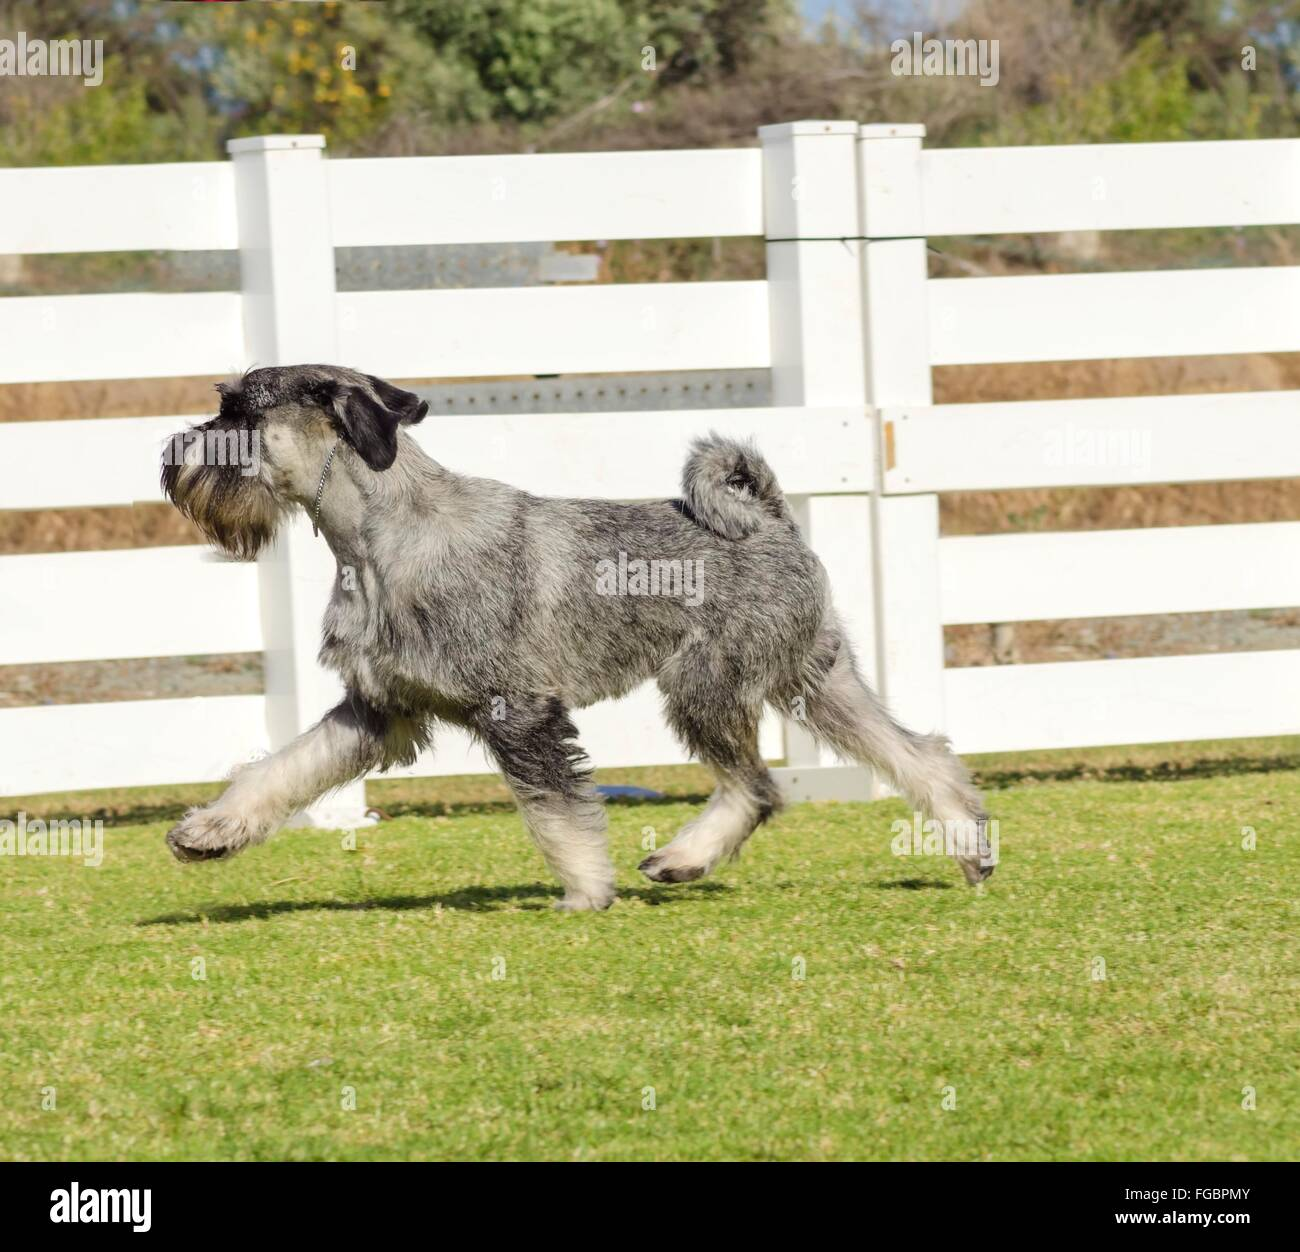 A young salt and pepper, gray Standard Schnauzer dog walking on the grass, looking very happy. It is known for being - Stock Image